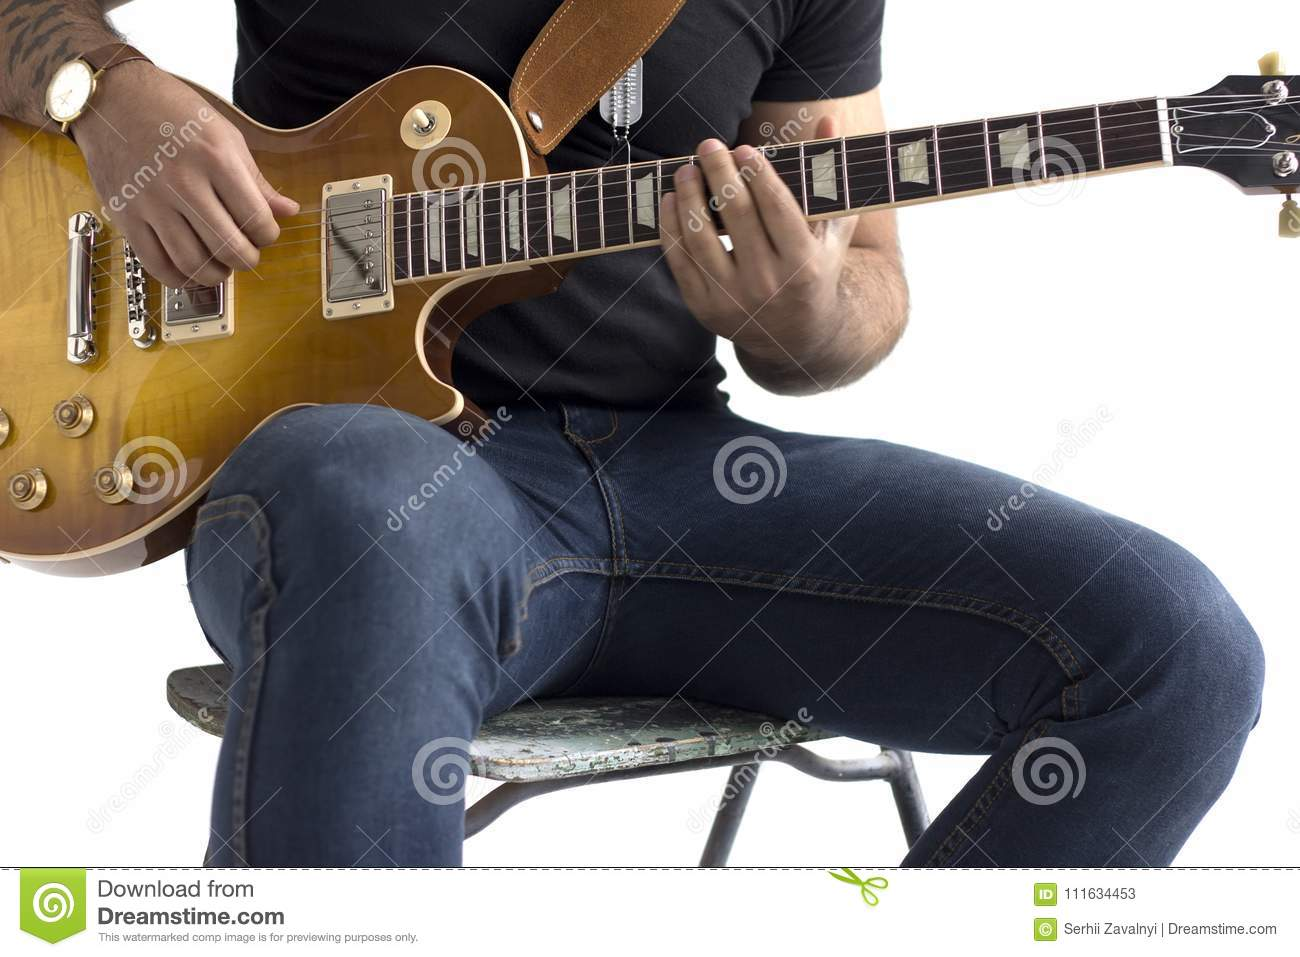 A man is sitting on a chair and playing an electric guitar on a white background.